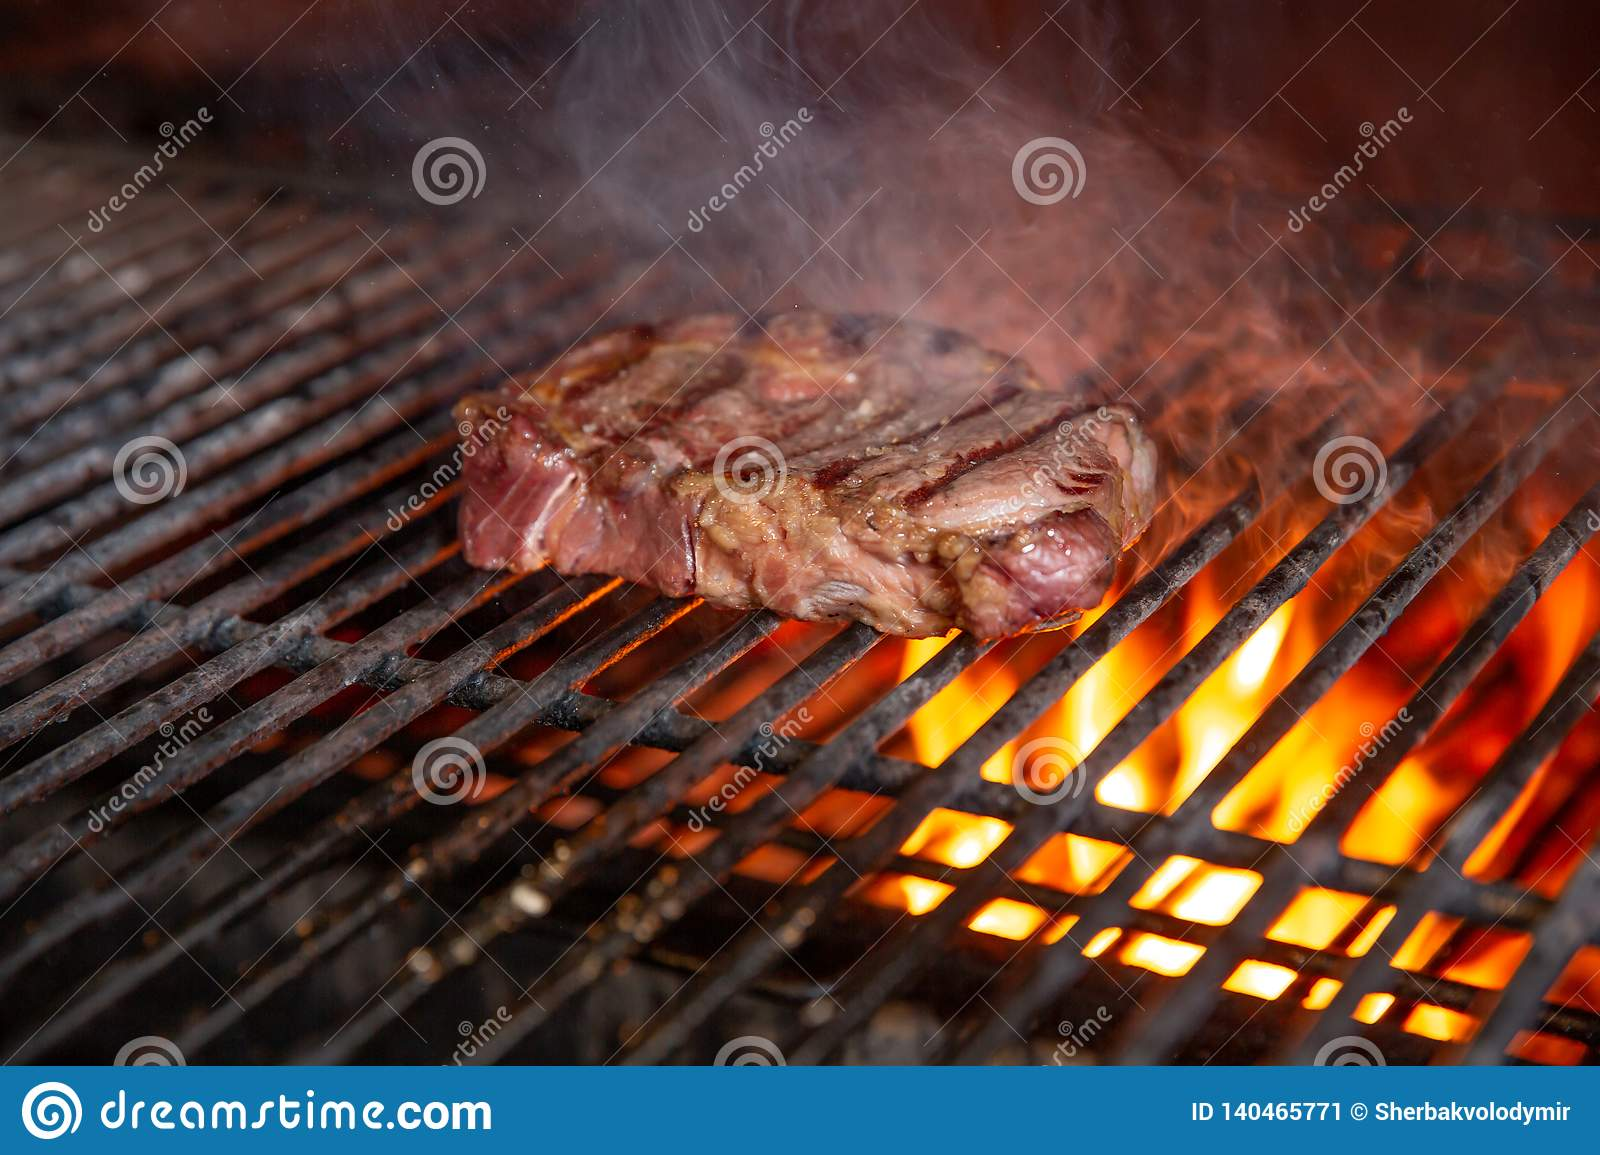 Bbq Beef Charcoal Grill Roast And Smoke Meat For Picnic Stock Image Image Of Flame Braai 140465771